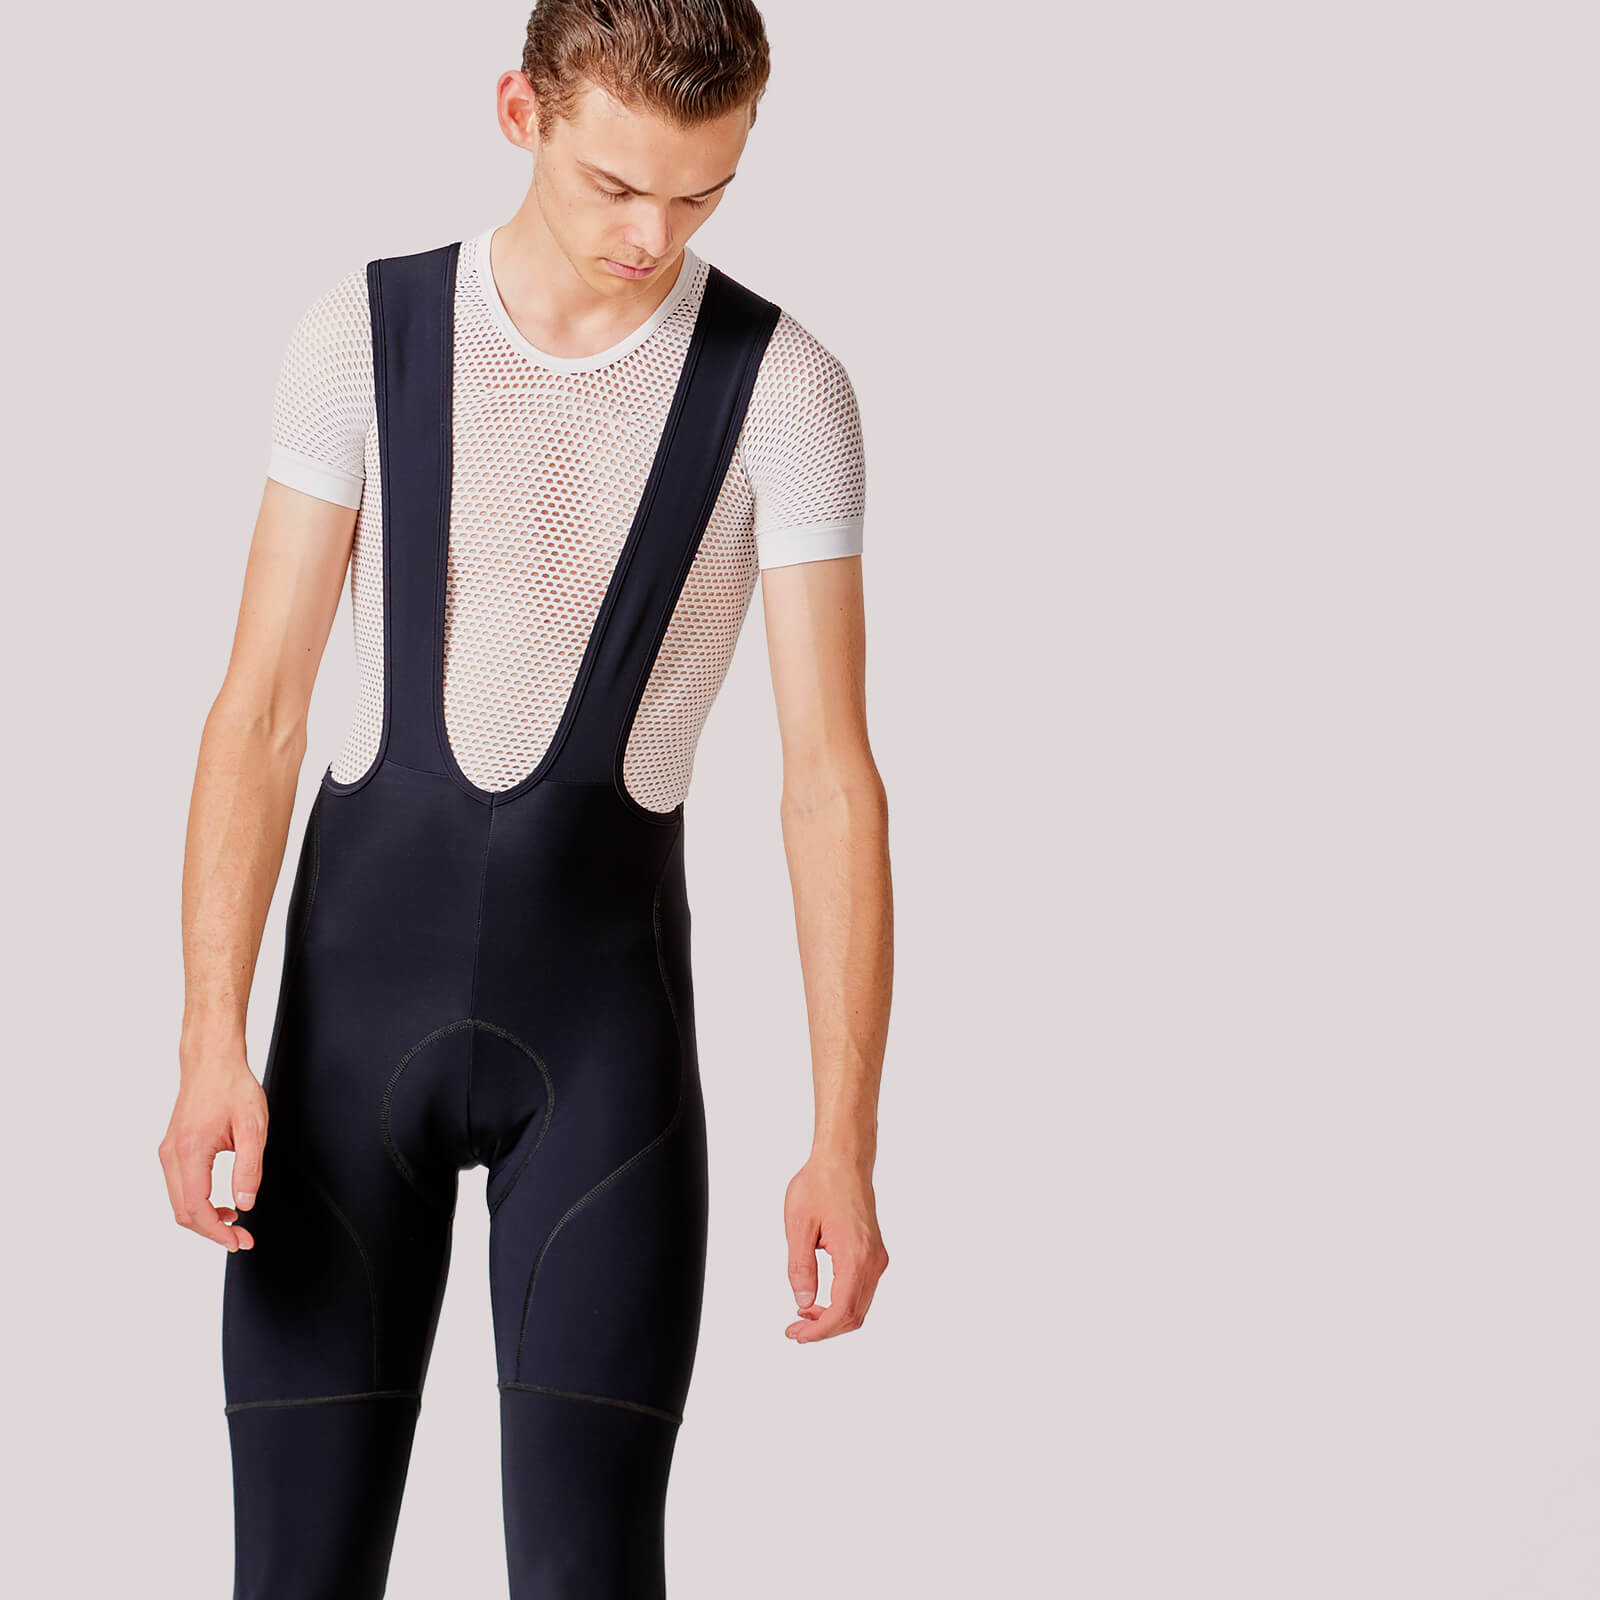 PBK Cold Weather Bib Tights